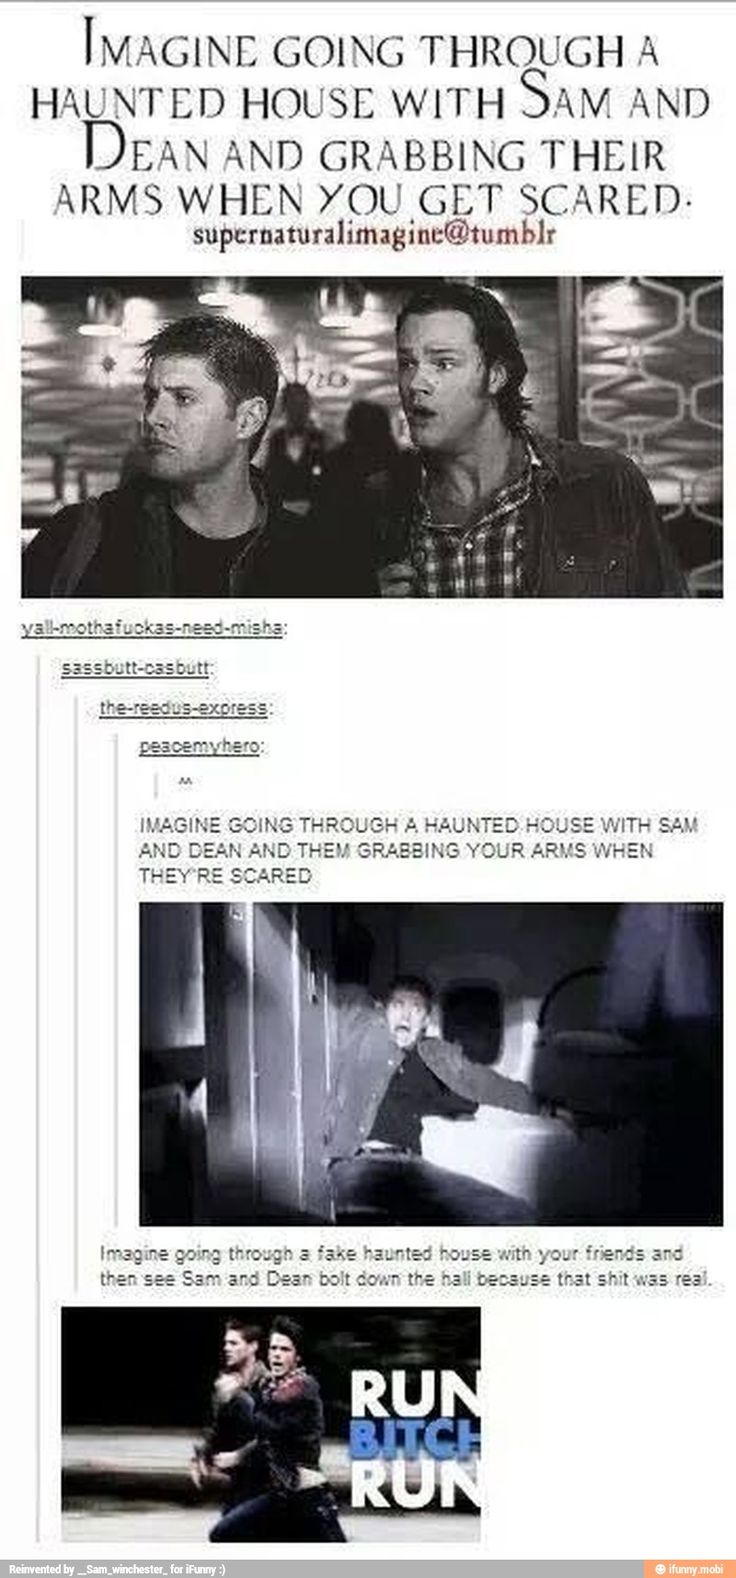 HAUNTED HOUSE WITH SAM AND DEAN. RUN, B**¢h RUN